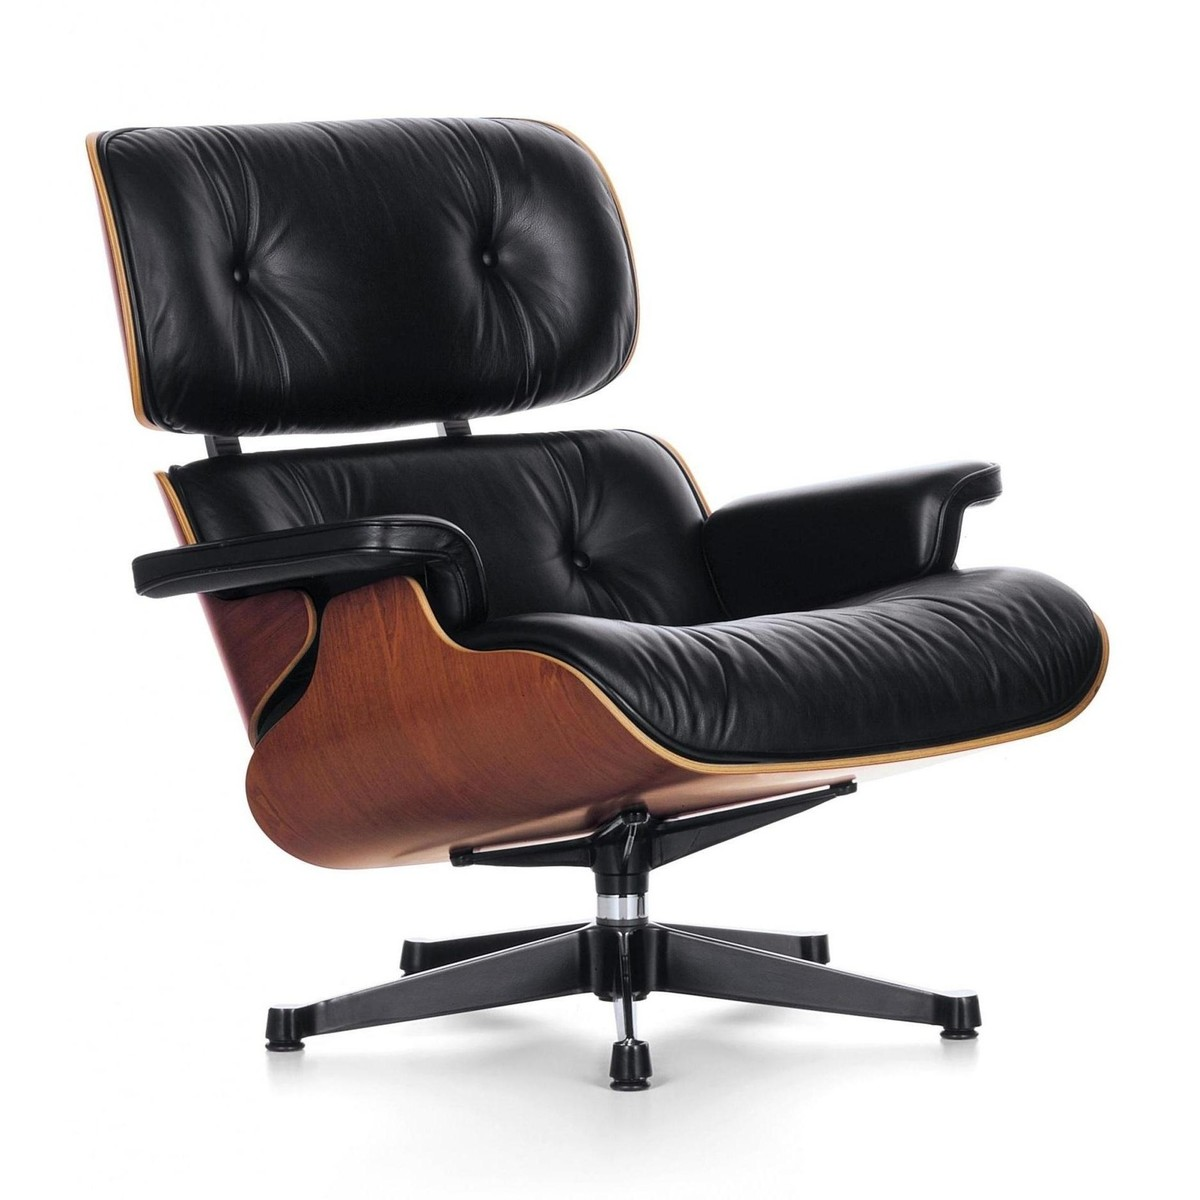 Eames lounge chair xl neue ma e drehsessel vitra - Drehsessel lounge ...